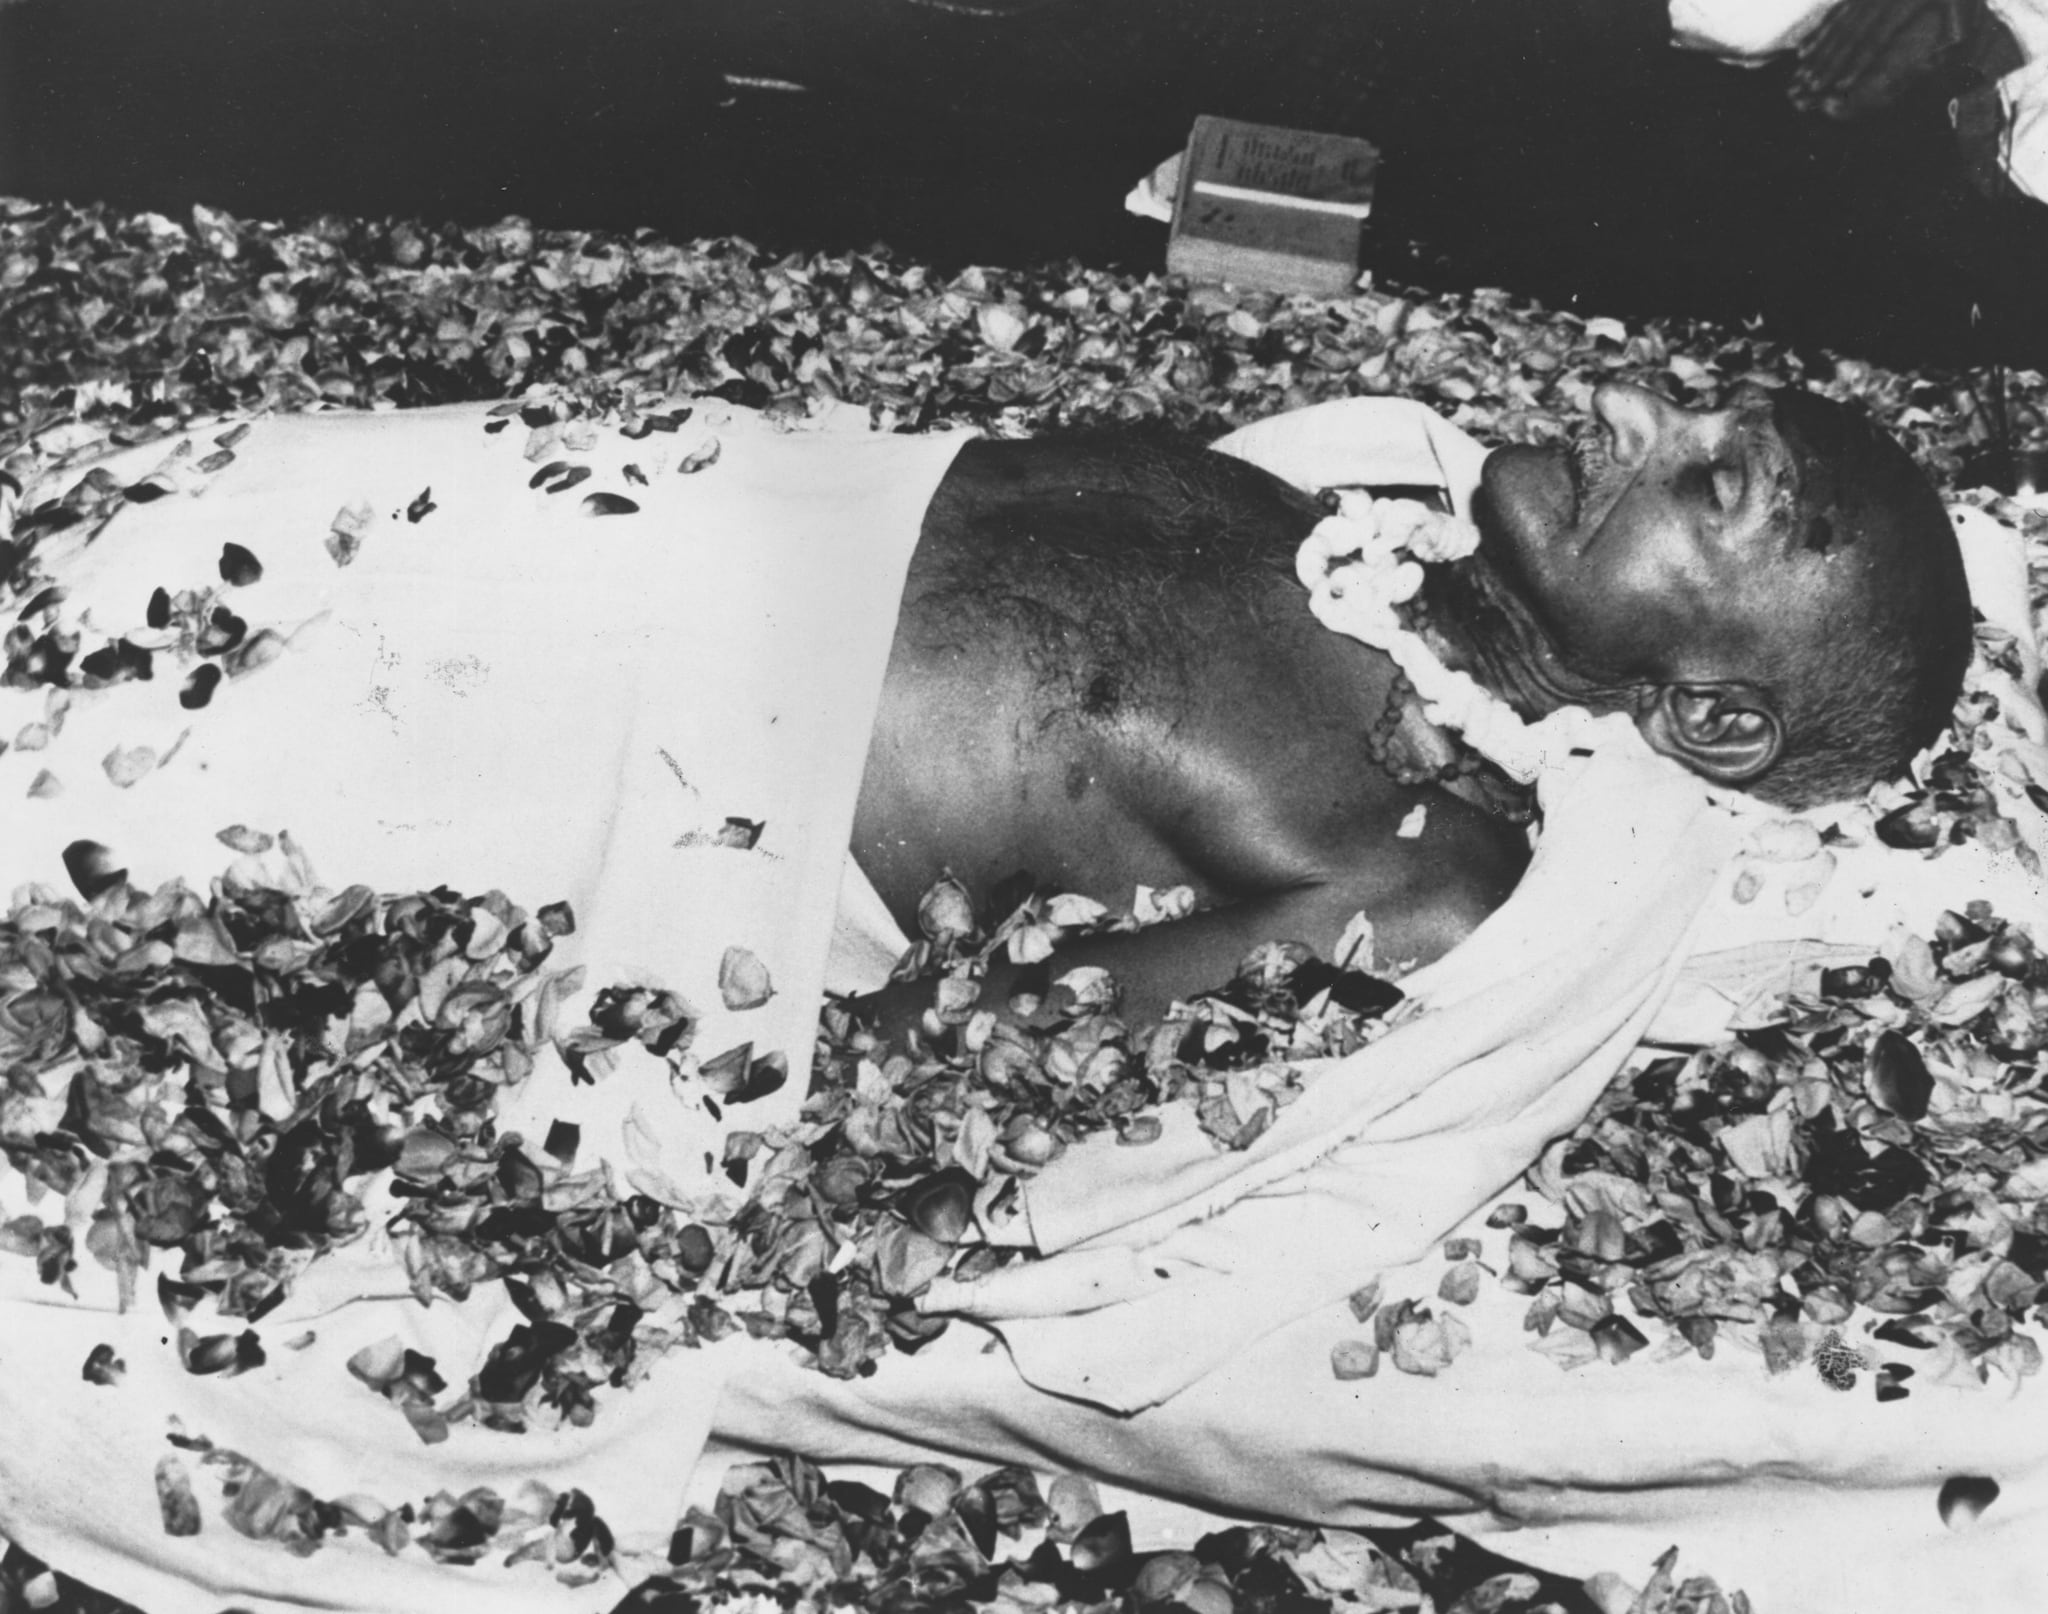 The body of Indian nationalist leader Mahatma Gandhi (Mohandas Karamchand Gandhi) lying in state at Birla House, New Delhi, before the funeral cortege leaves for the burning ghats on the banks of the River Jumna. (Photo by Keystone/Getty Images)